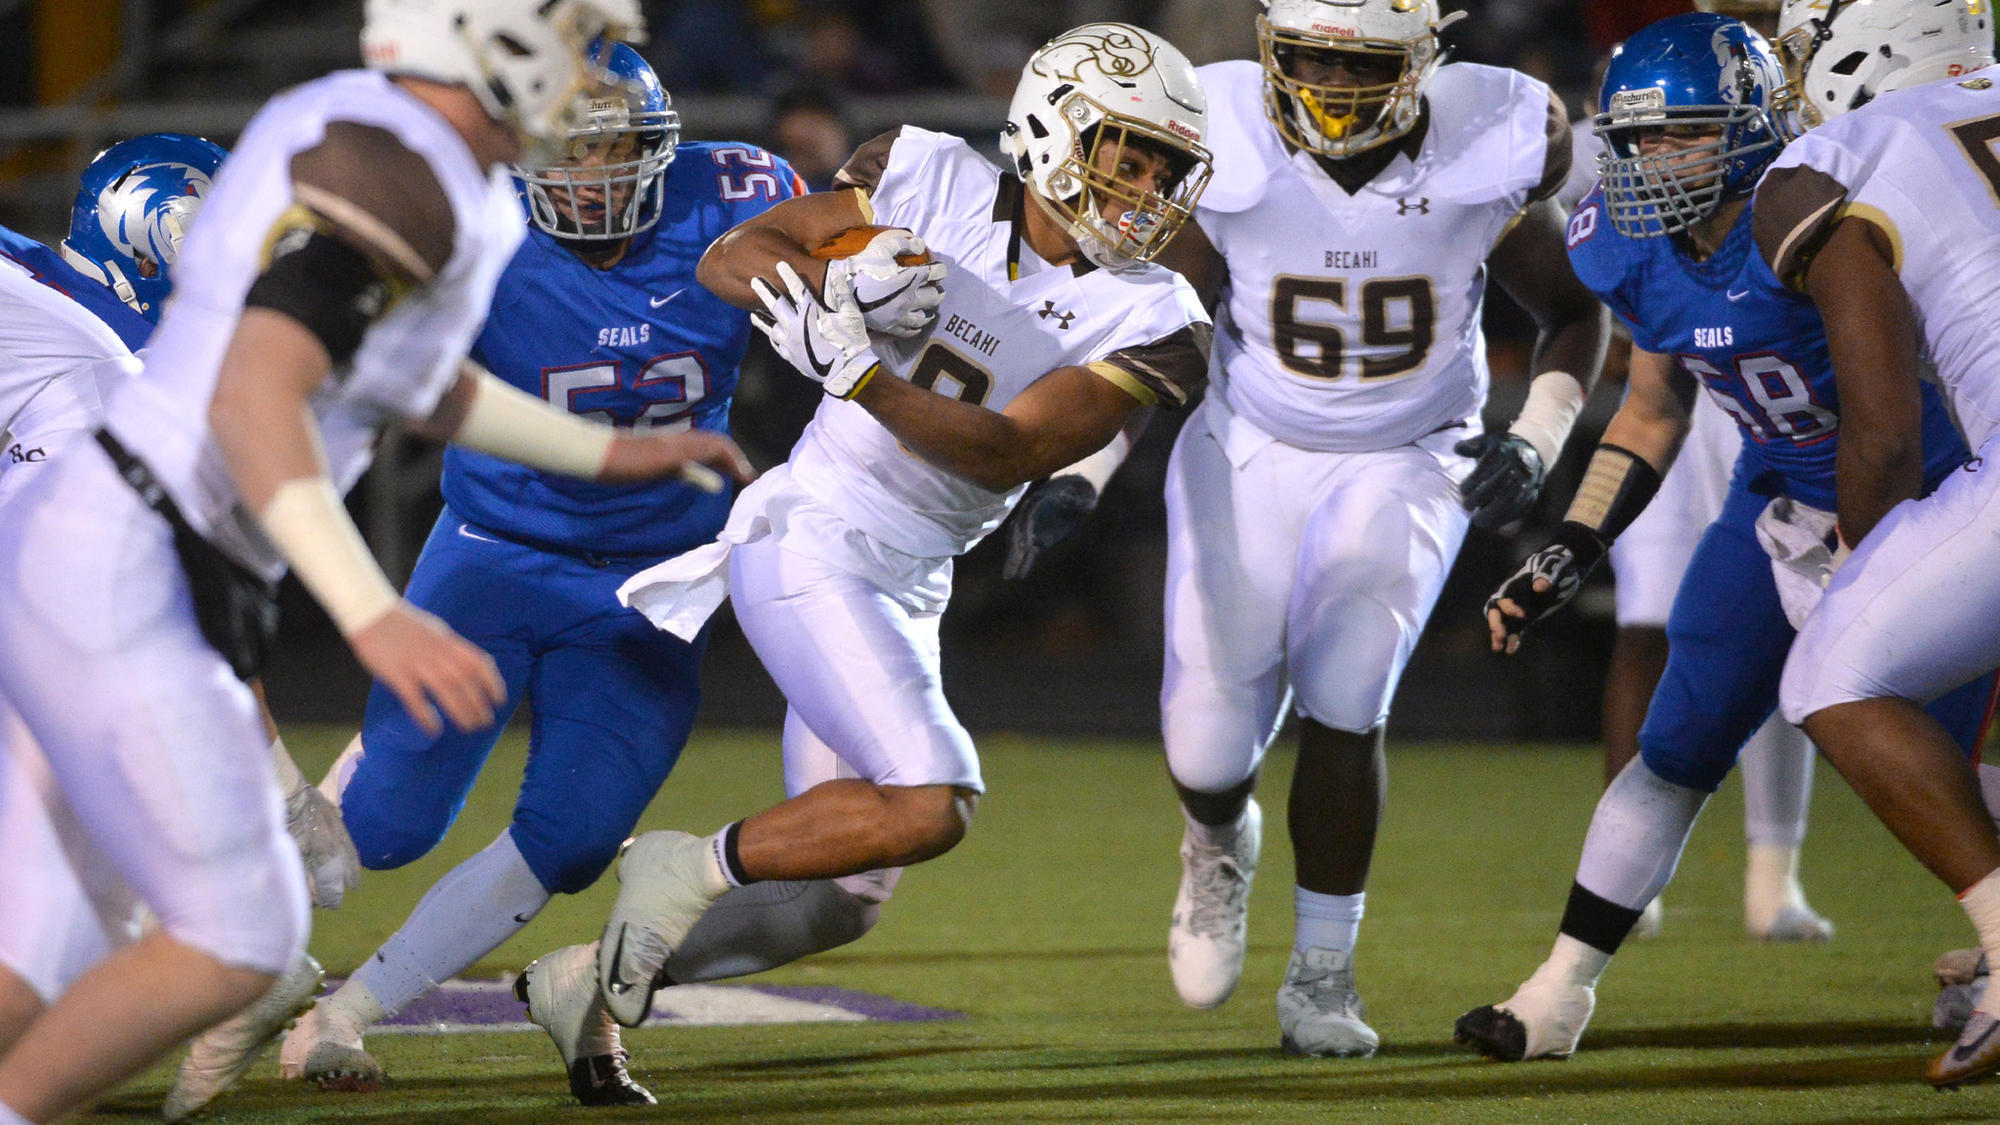 High school football preview, EPC South: Emmaus, Bethlehem Catholic could finish 1 and 2; plus: 5 players to watch